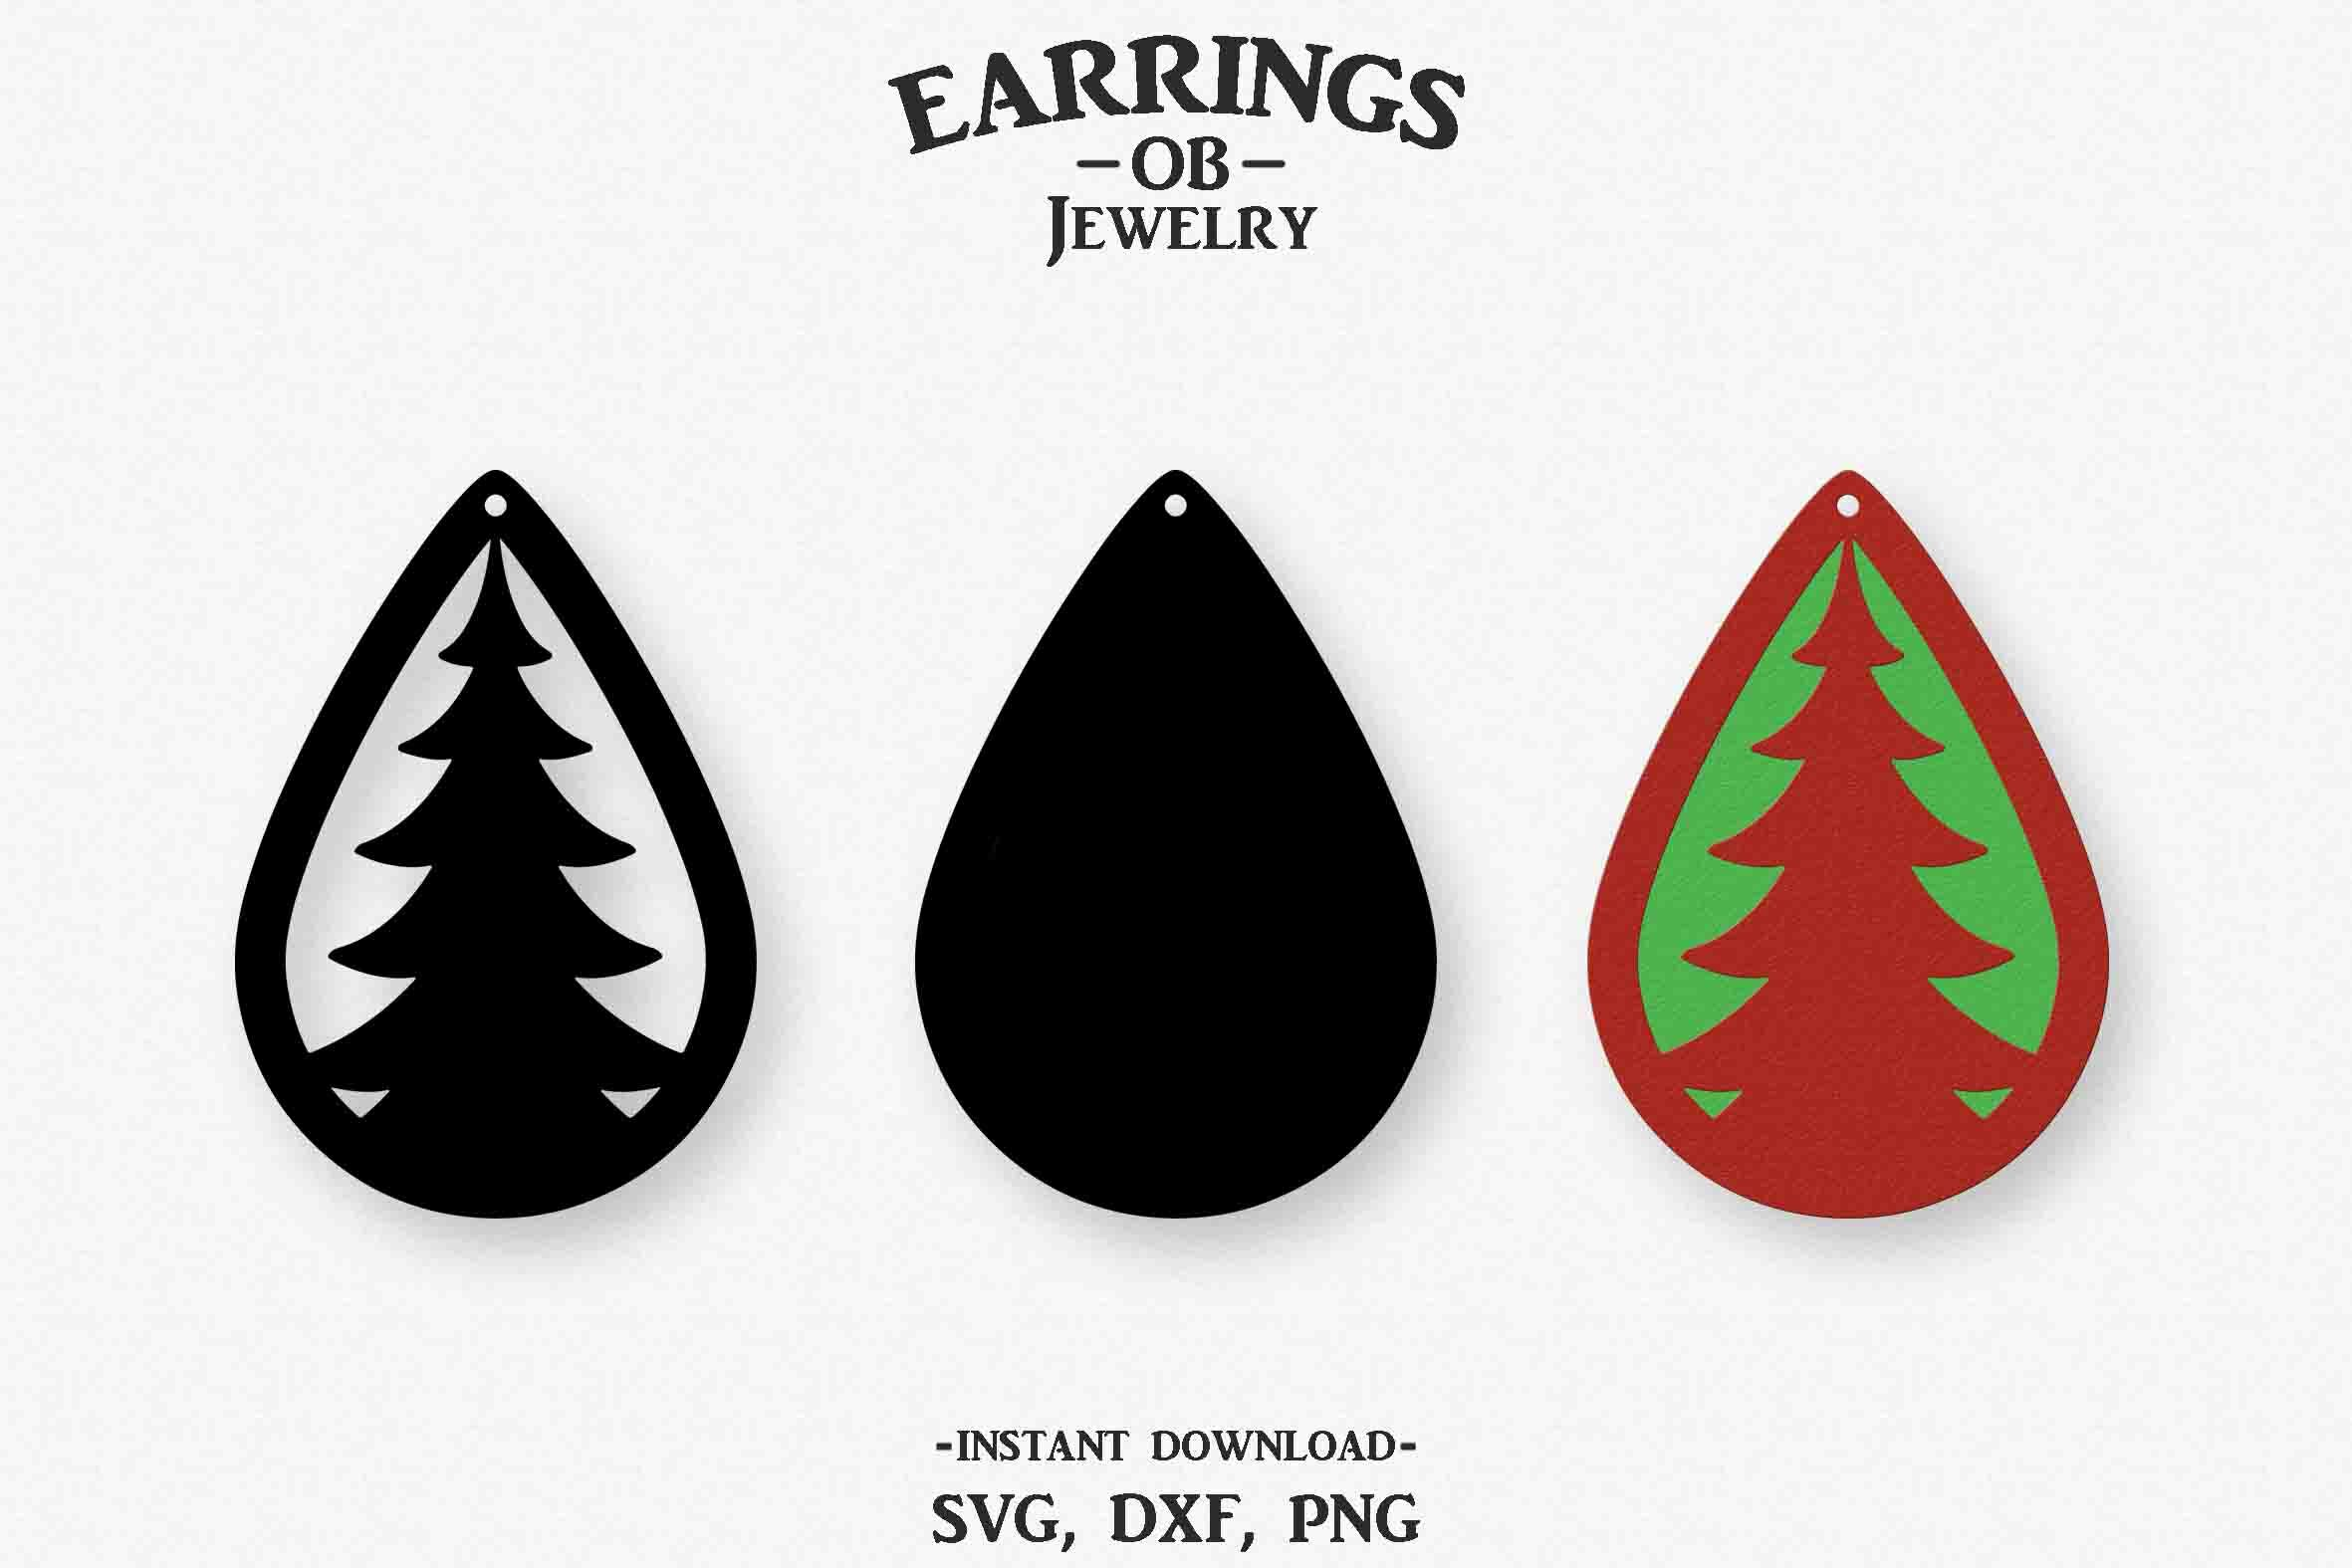 We may earn commission from links on this page, but we only recommend products we back. Christmas Tree Earrings Svg Free